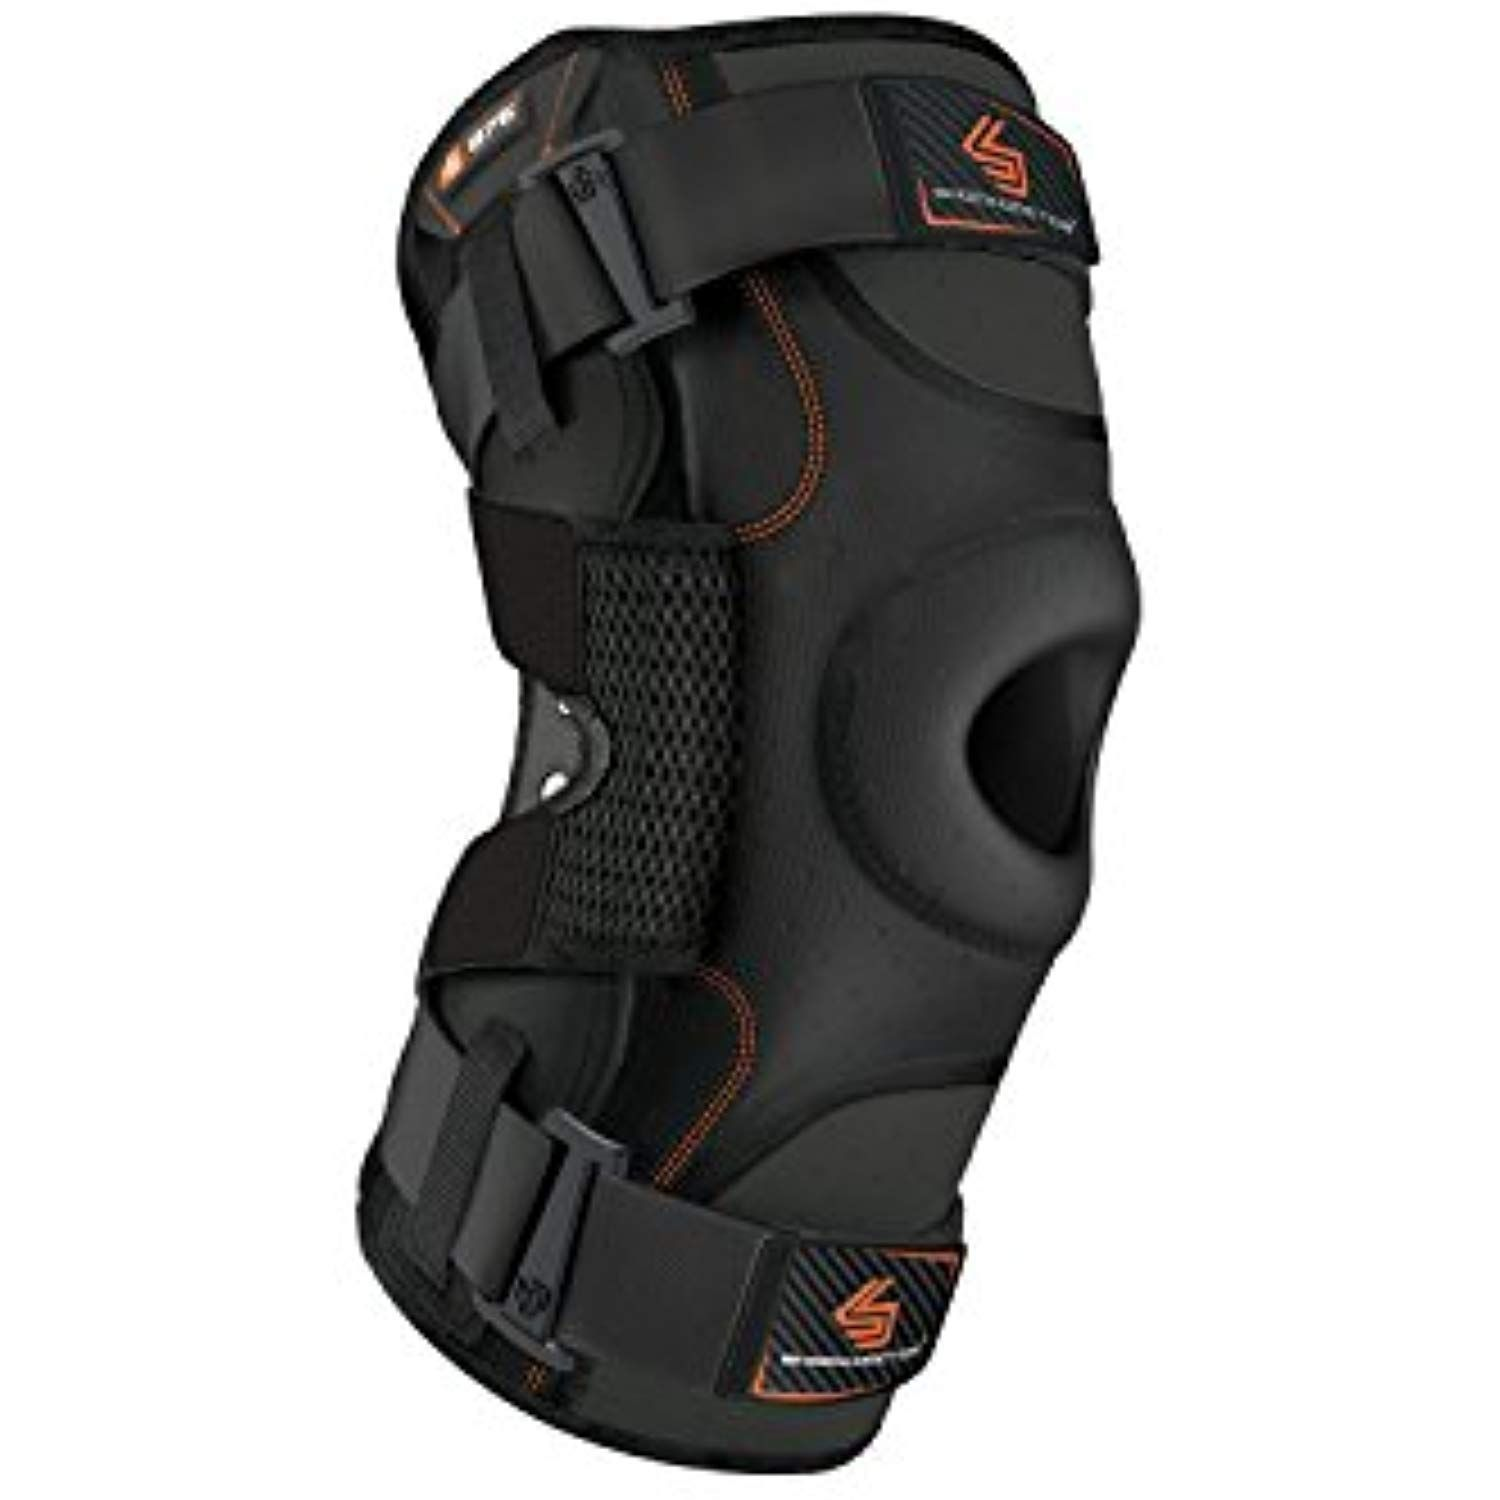 990988aa68 Shock Doctor Knee Brace, Knee Support for Stability, ACL/PCL Injuries,  Patella Support, Prevent Hyperextension, Meniscus Injuries, Ligament  Sprains for Men ...